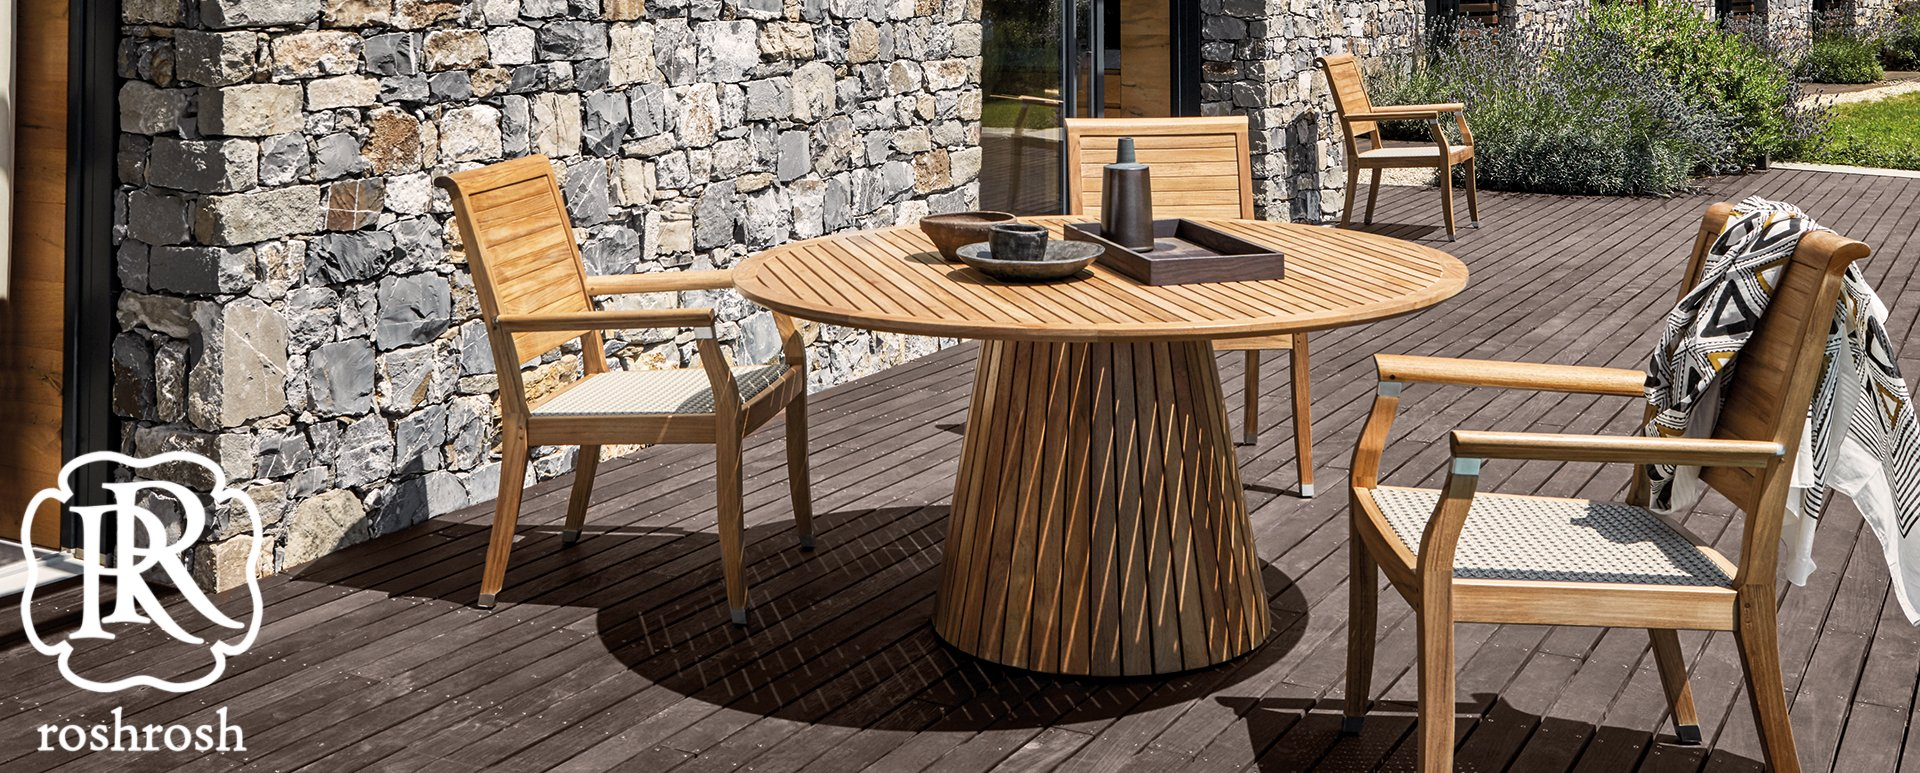 3 Things To Know About Teak Furniture Roshrosh